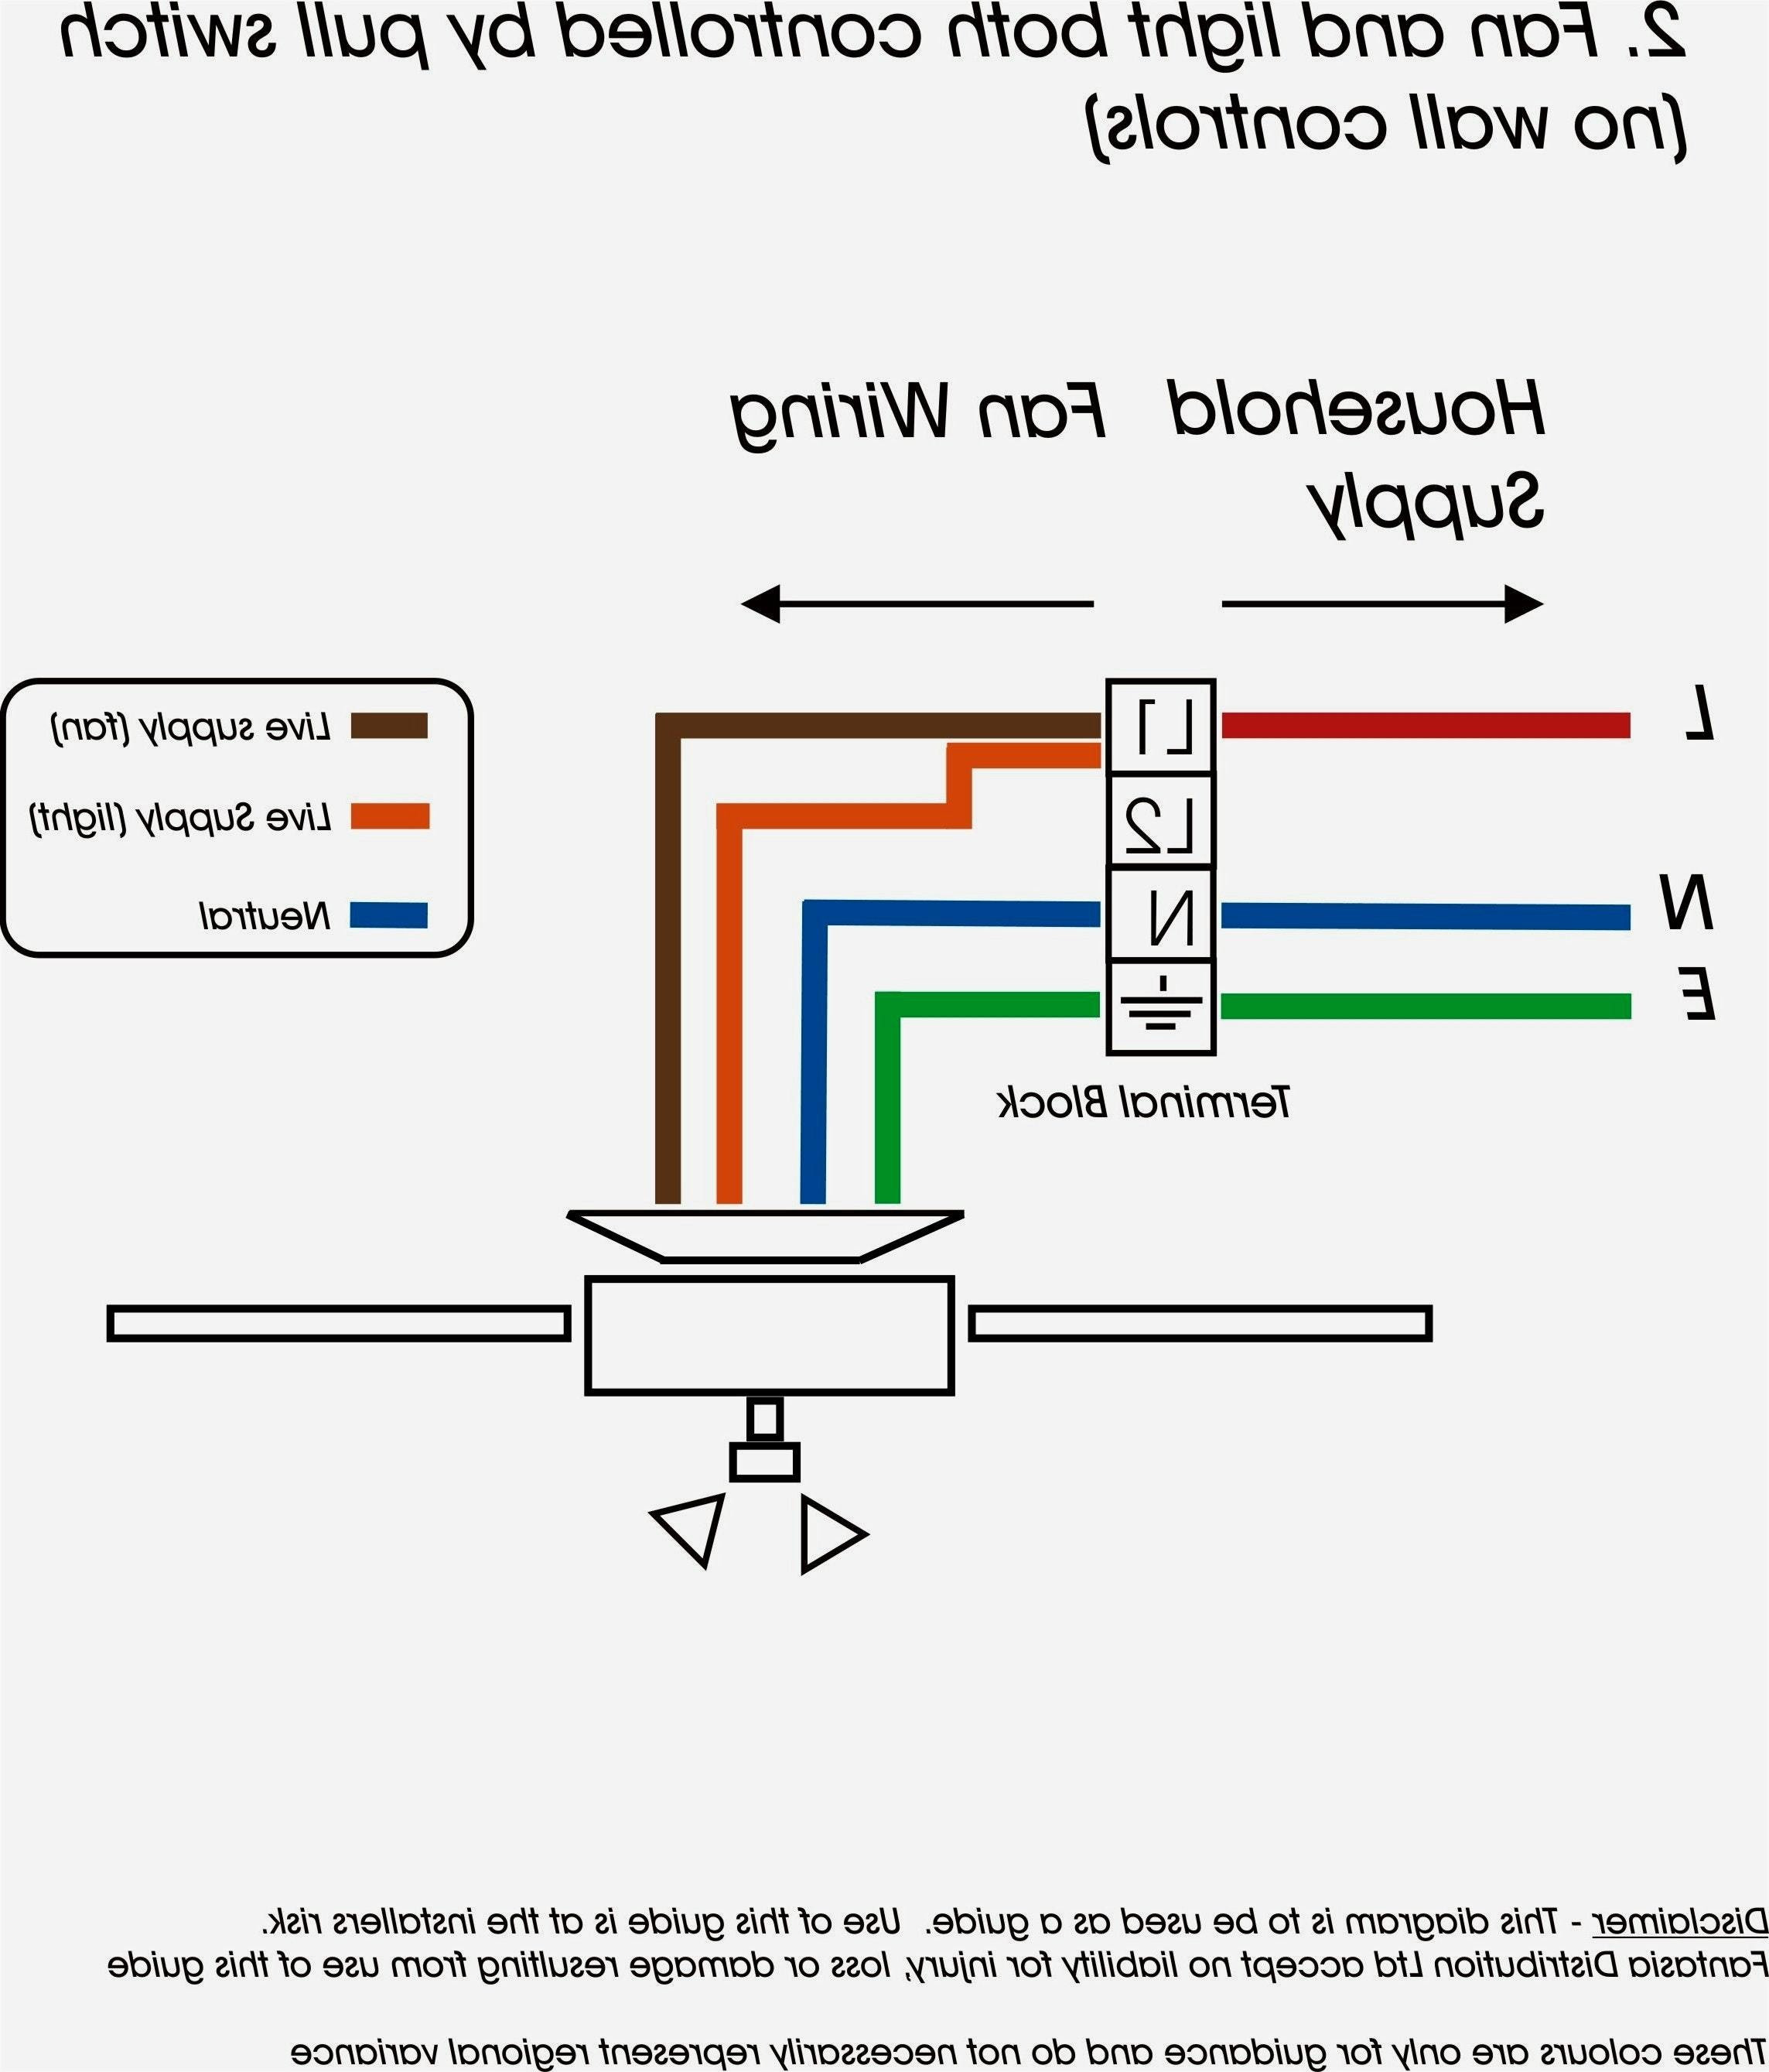 ceiling fan wiring diagram 3 speed Download-Wiring Diagram For 3 Speed Ceiling Fan New Ceiling Fan Pull Chain Light Switch Wiring Diagram Best With 7-h